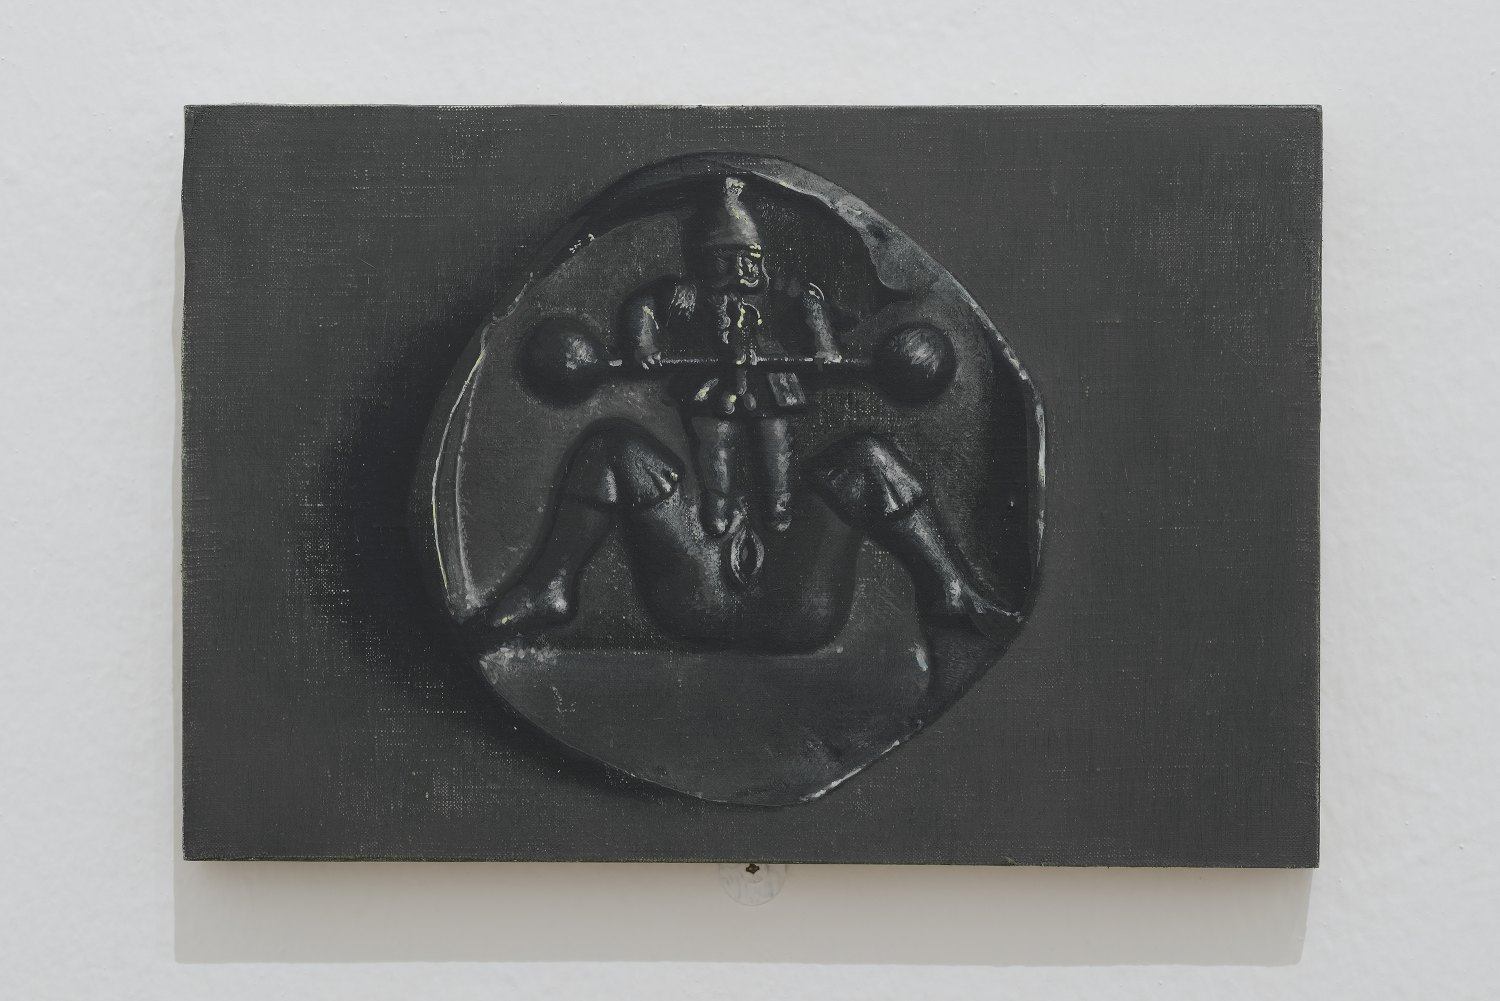 Victor Man Untitled, 2013 Oil on linen mounted on wood, 18 &times 27 cm